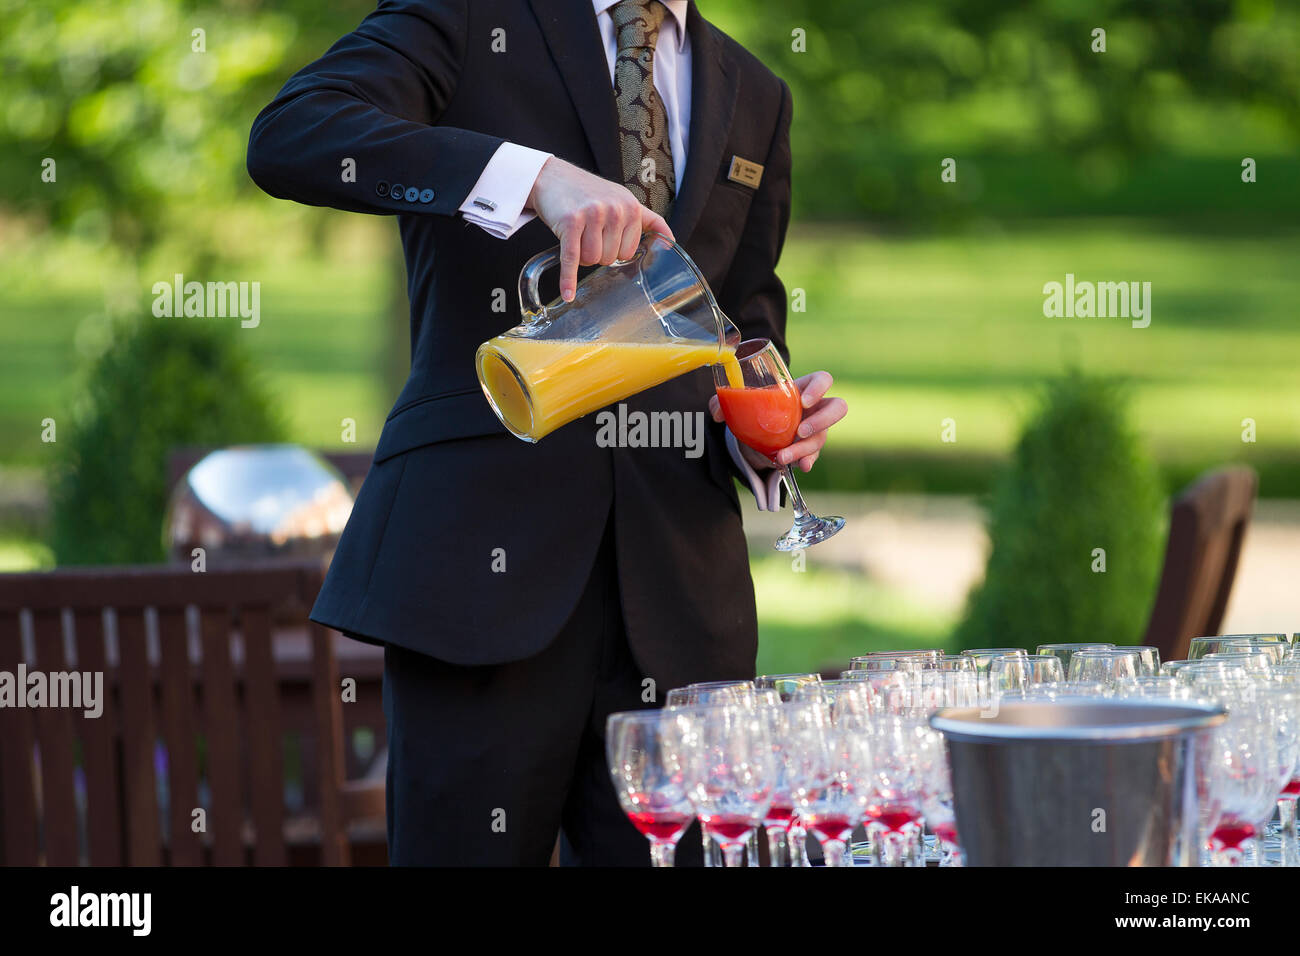 A waiter serves a non alcoholic fruit cocktail wearing a suit and tie - Stock Image